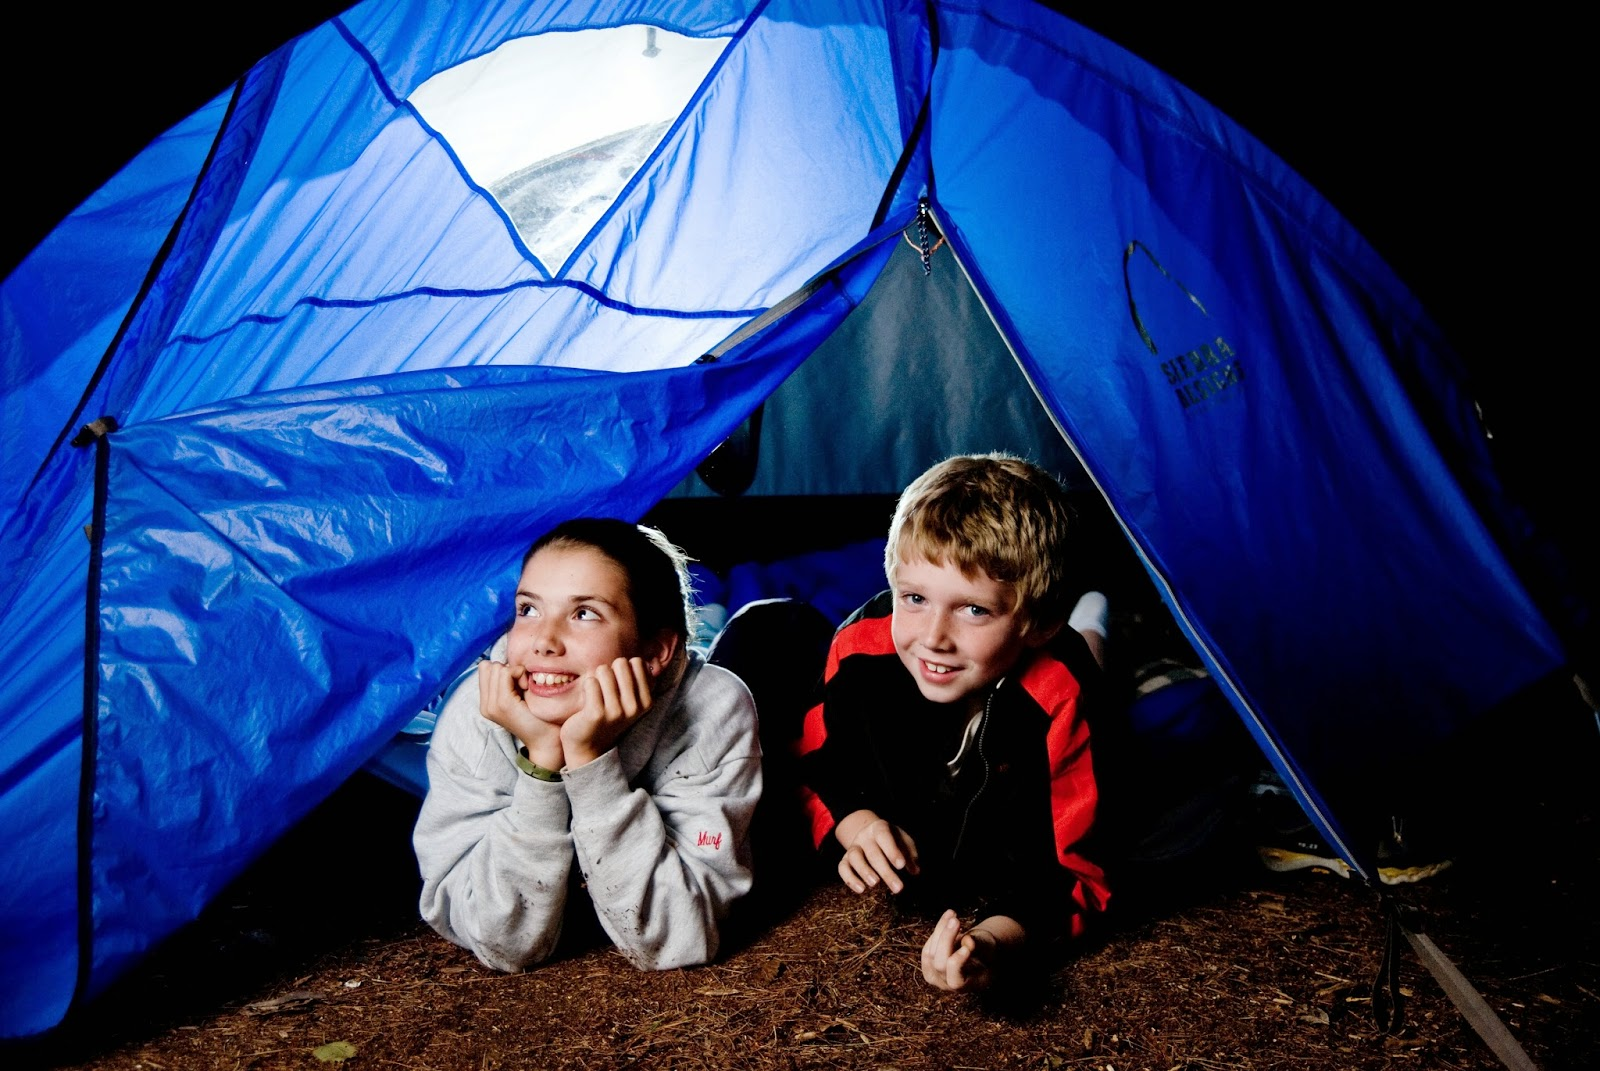 Family Backyard Camping :  Great American Backyard Campout Get Your Family Camping for a Night